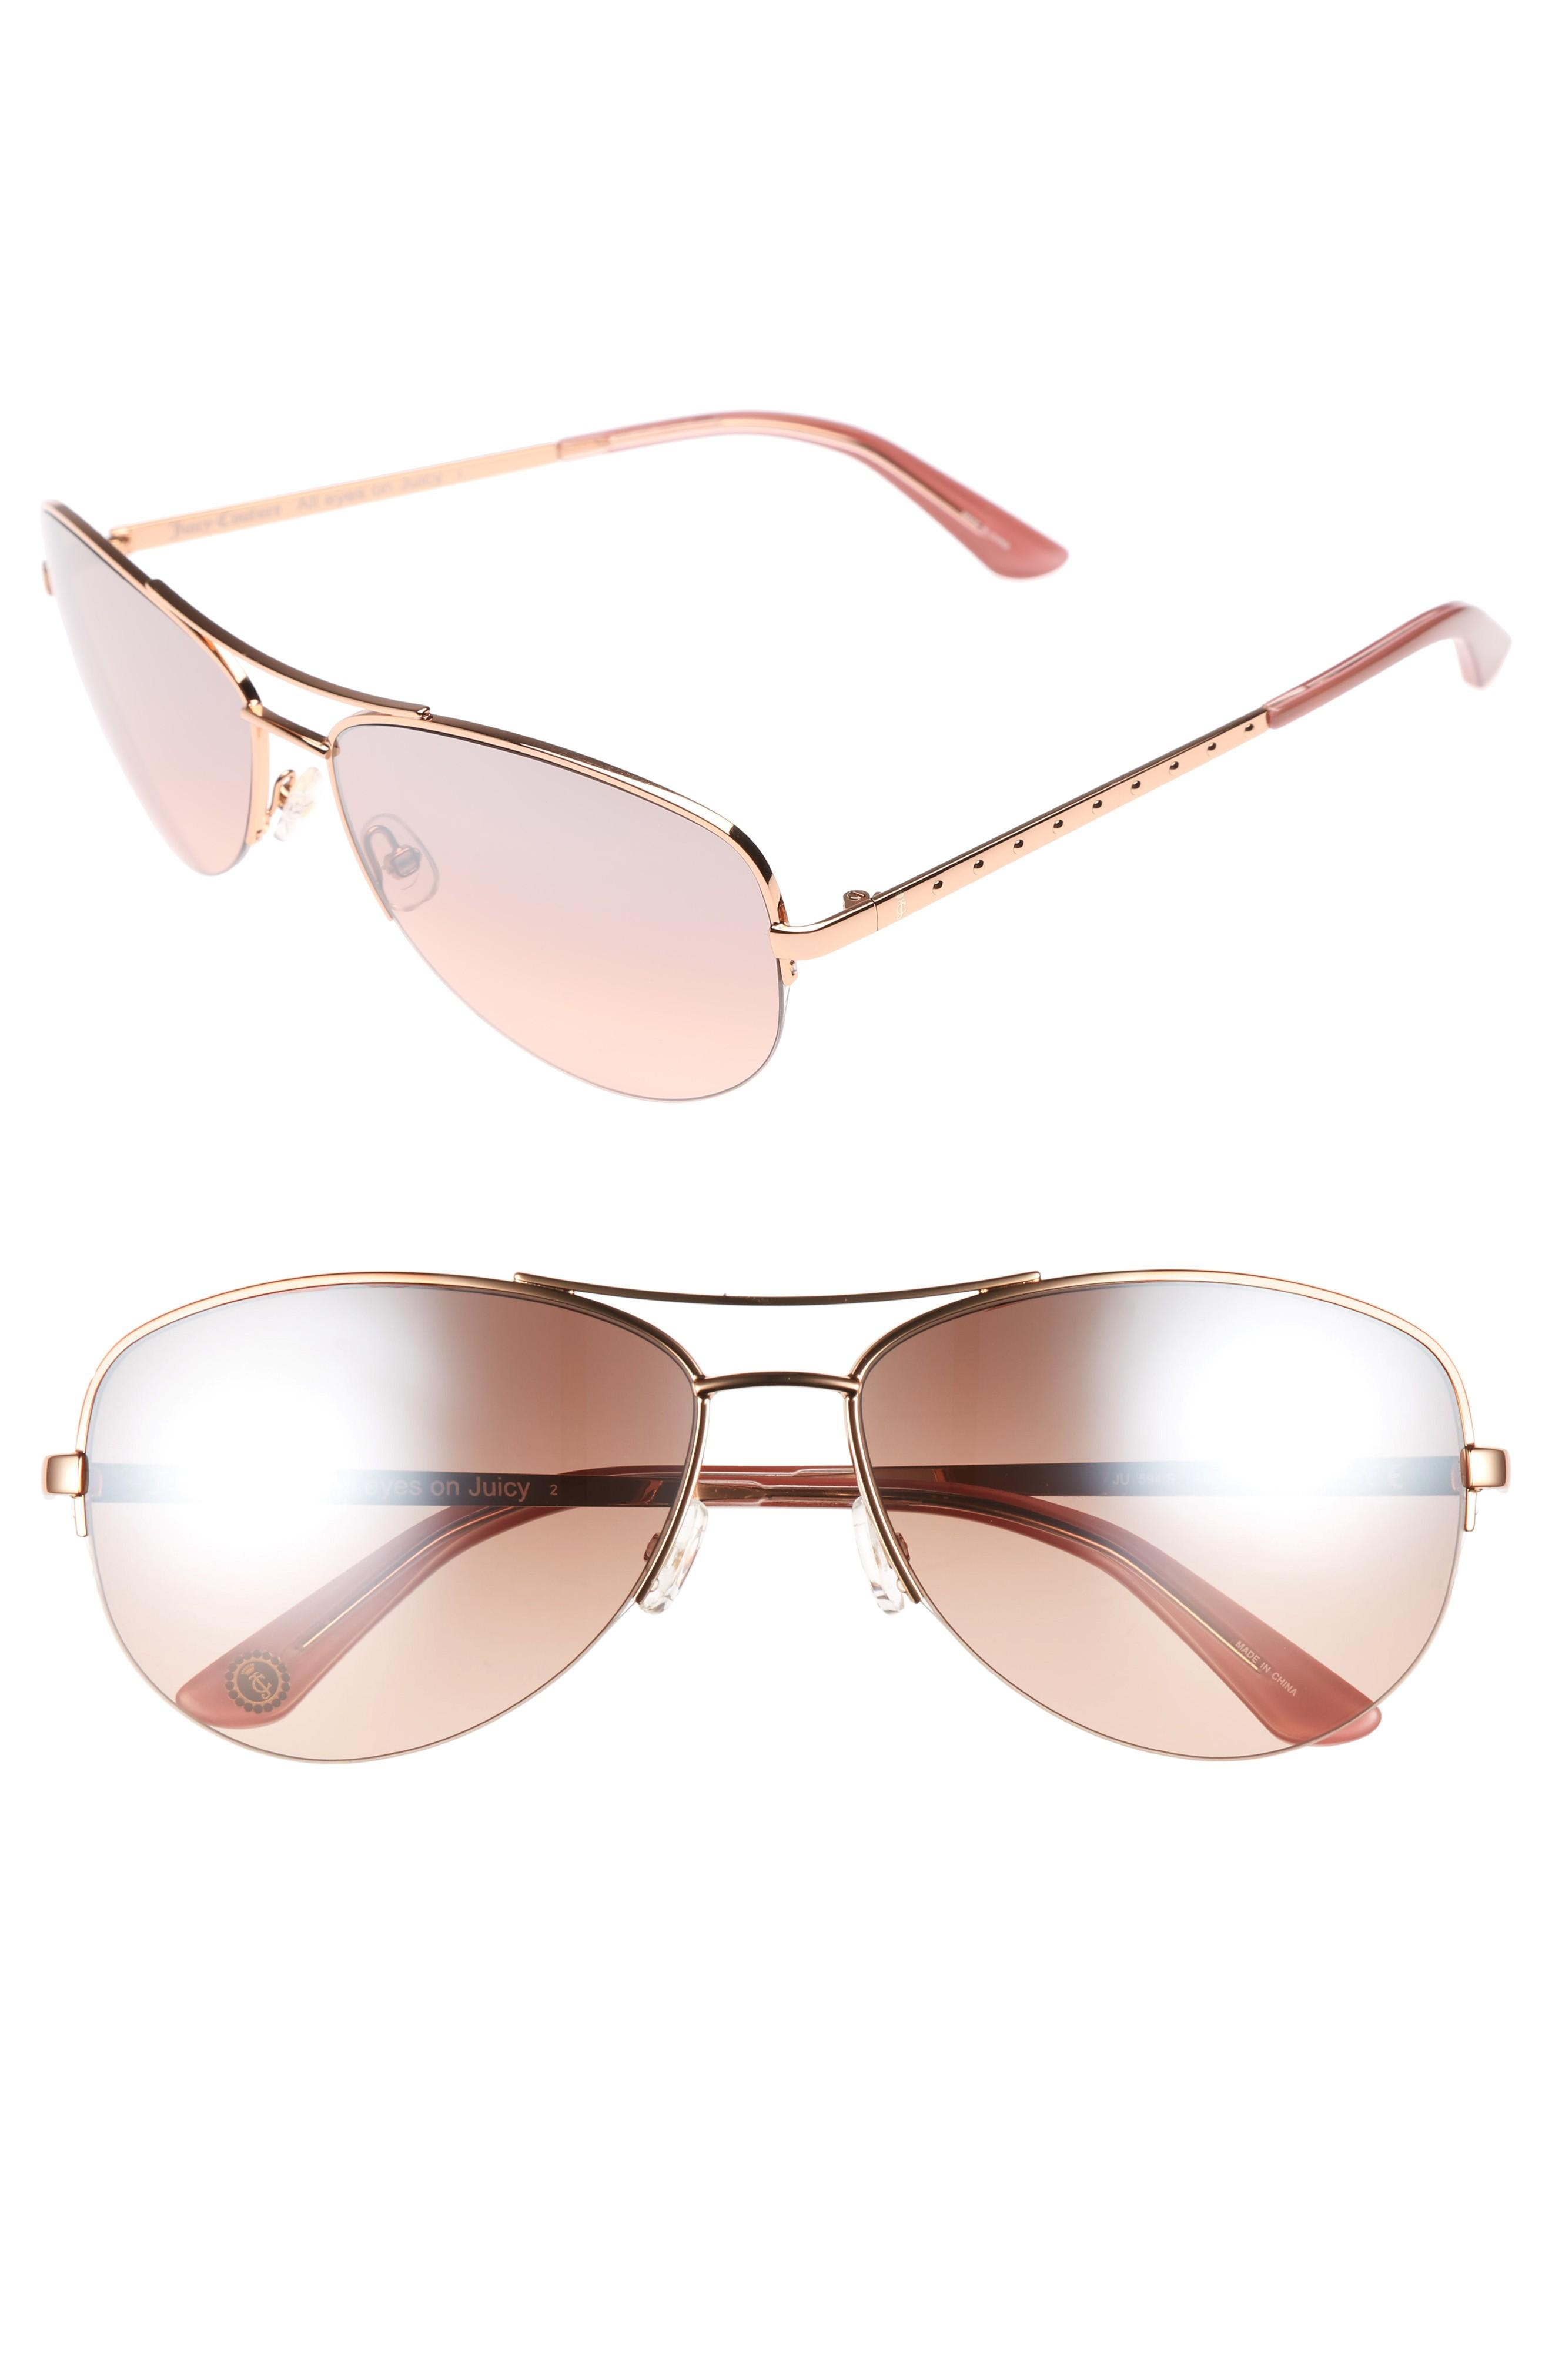 73f49222b5 Juicy Couture Black Label 60Mm Gradient Aviator Sunglasses - Red Gold